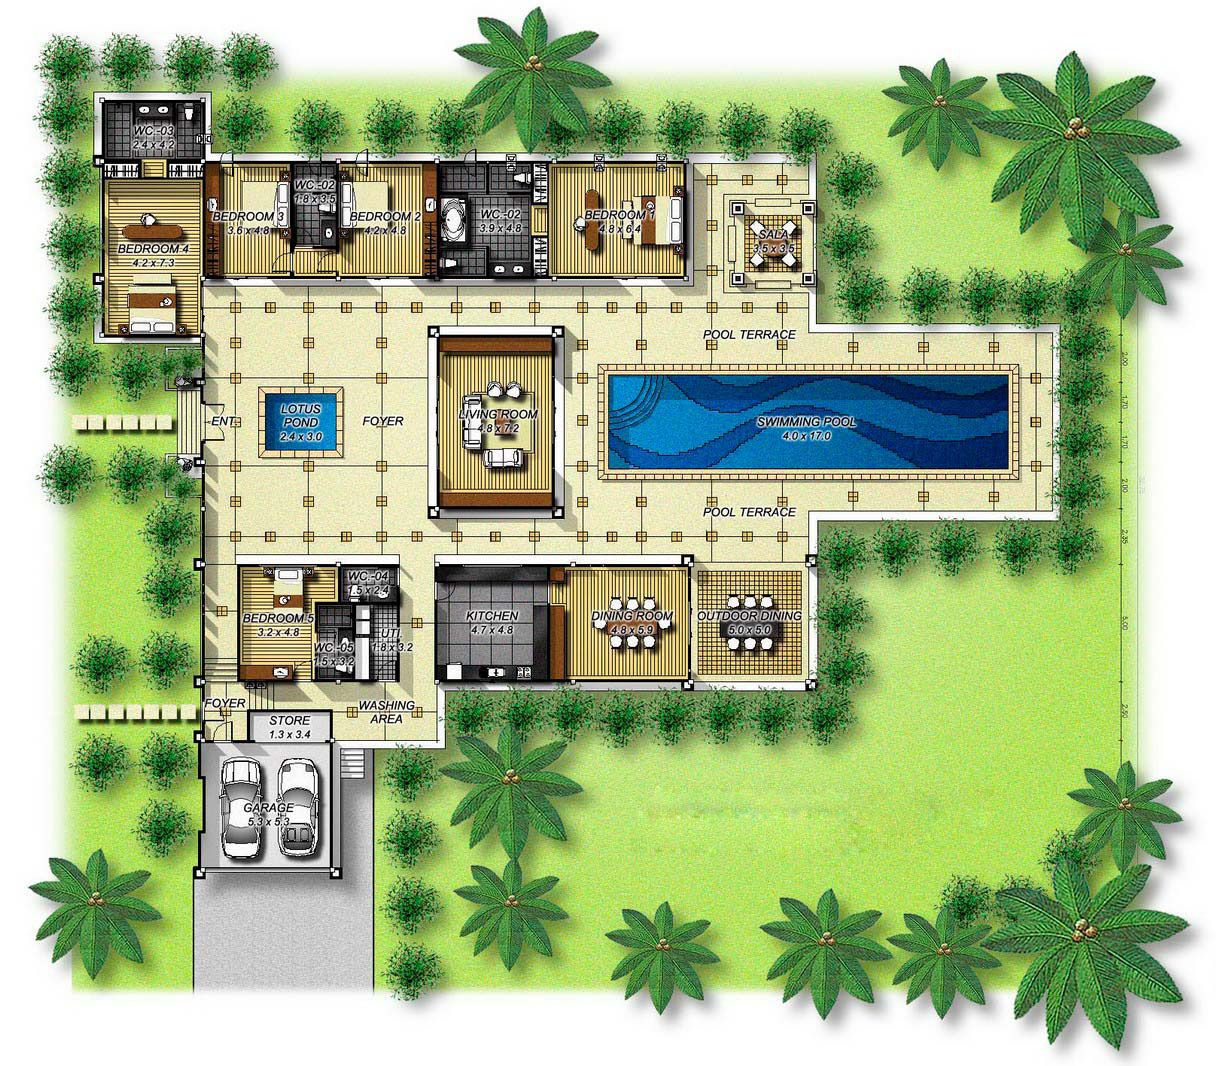 House plans with courtyards in the center central for Home planners inc house plans